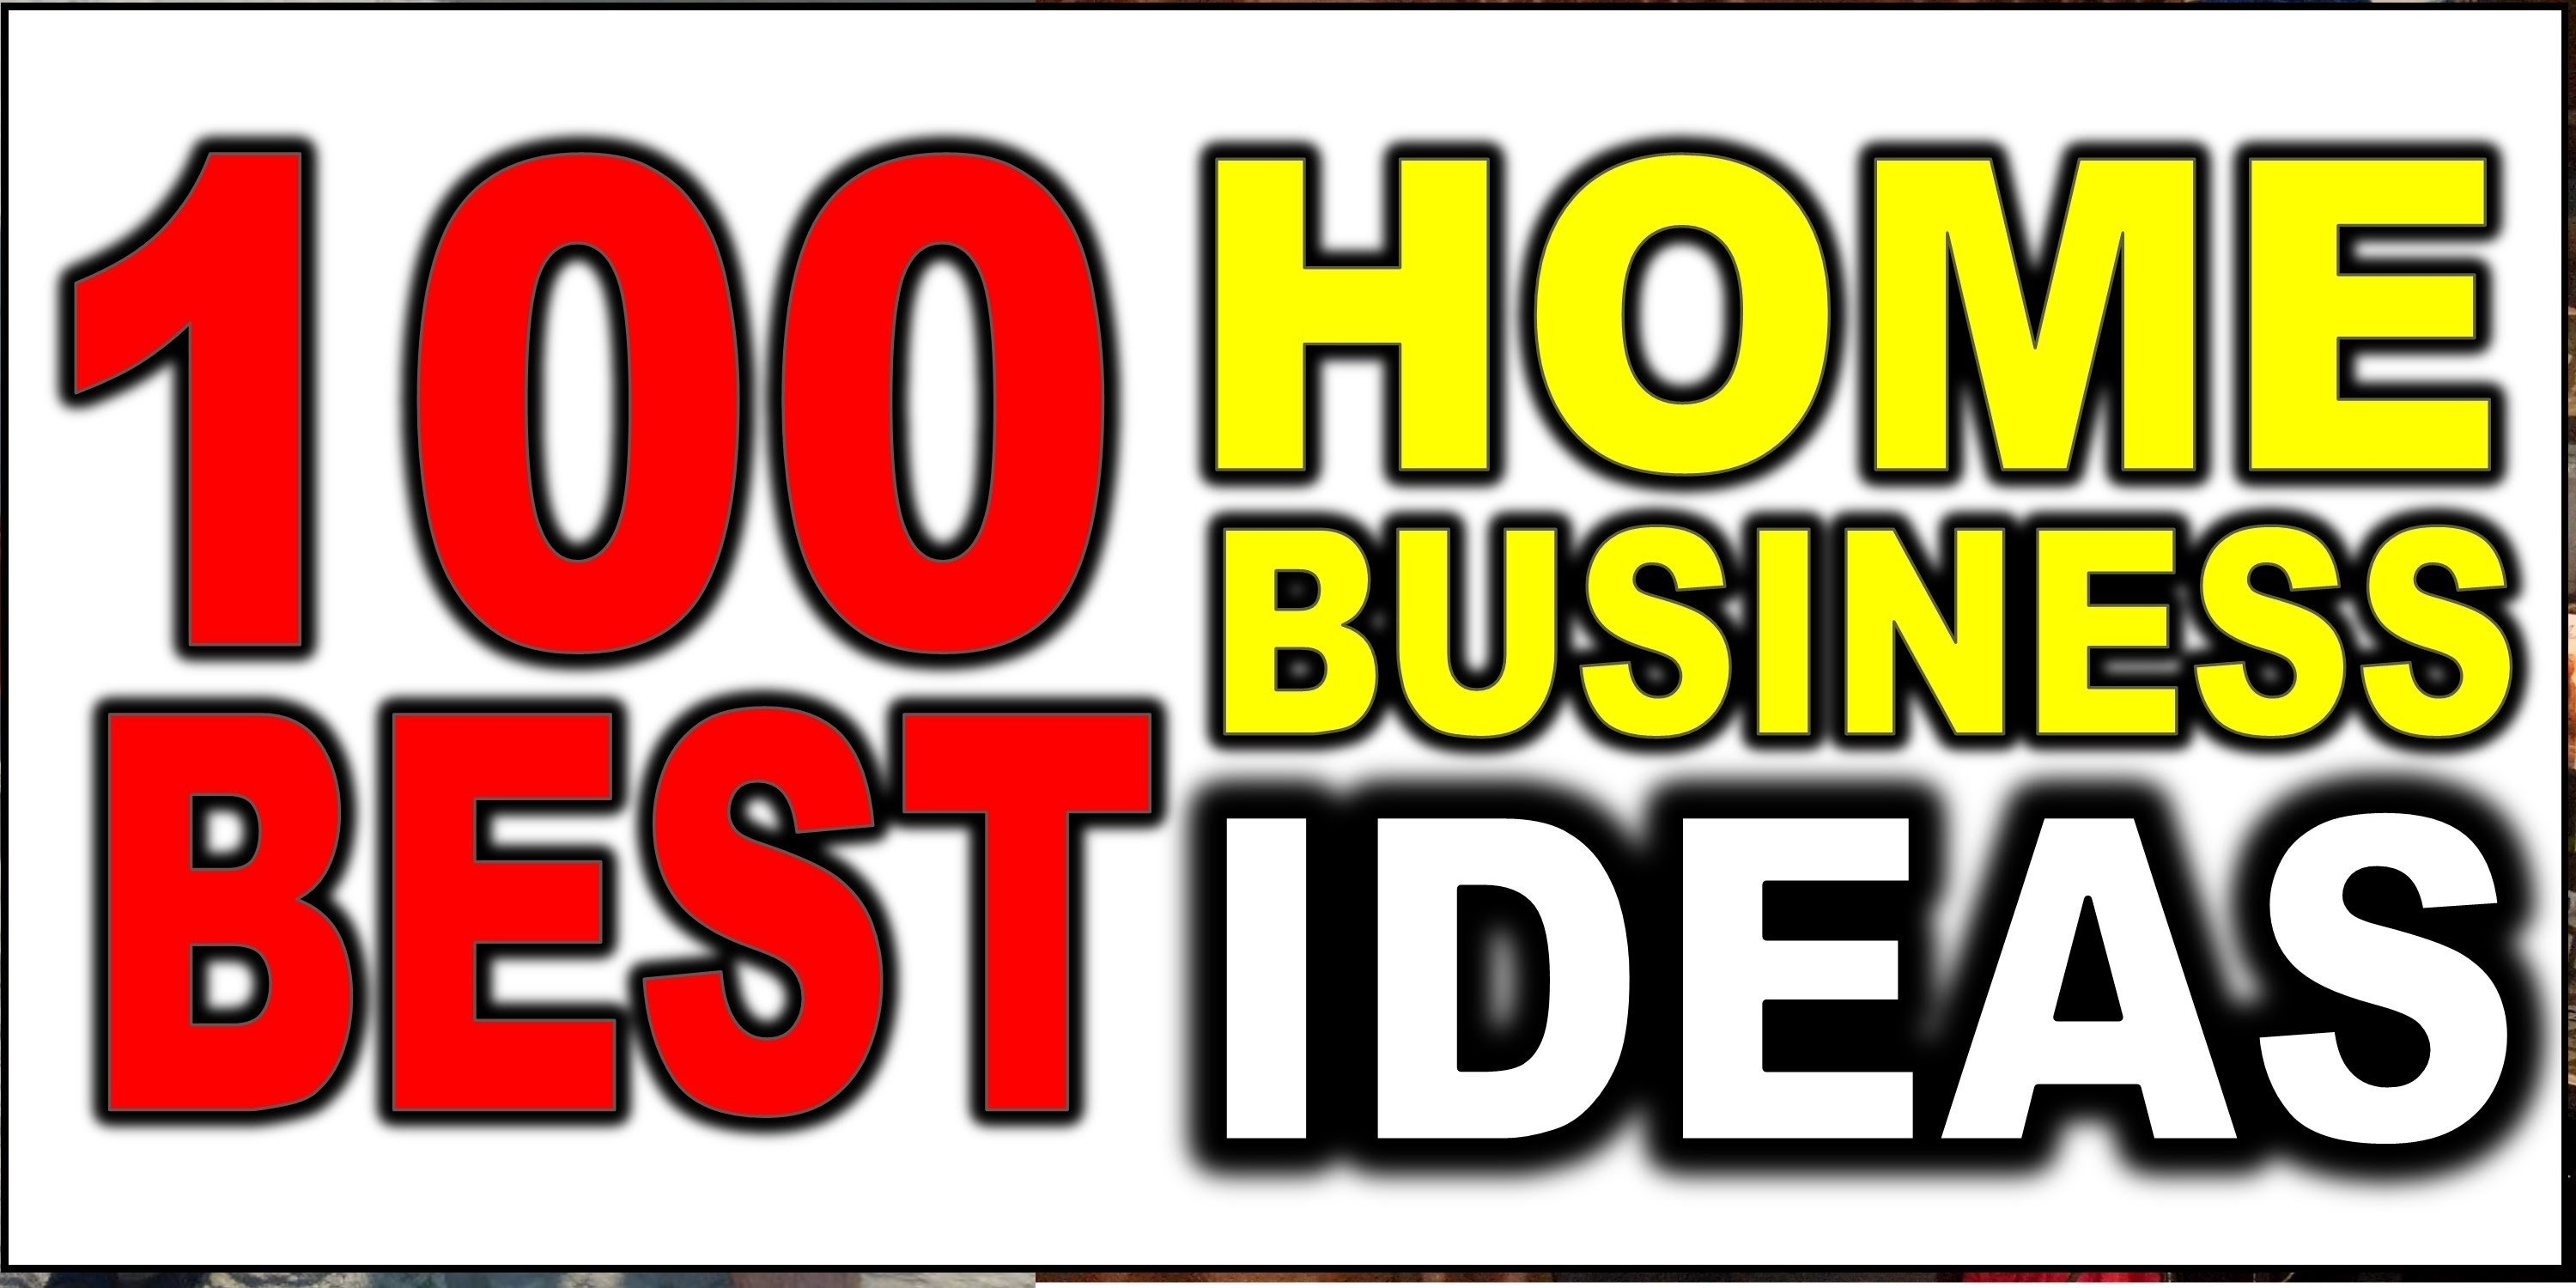 10 Cute Ideas For Starting A Small Business best business ideas to start at home home ideas best starting home